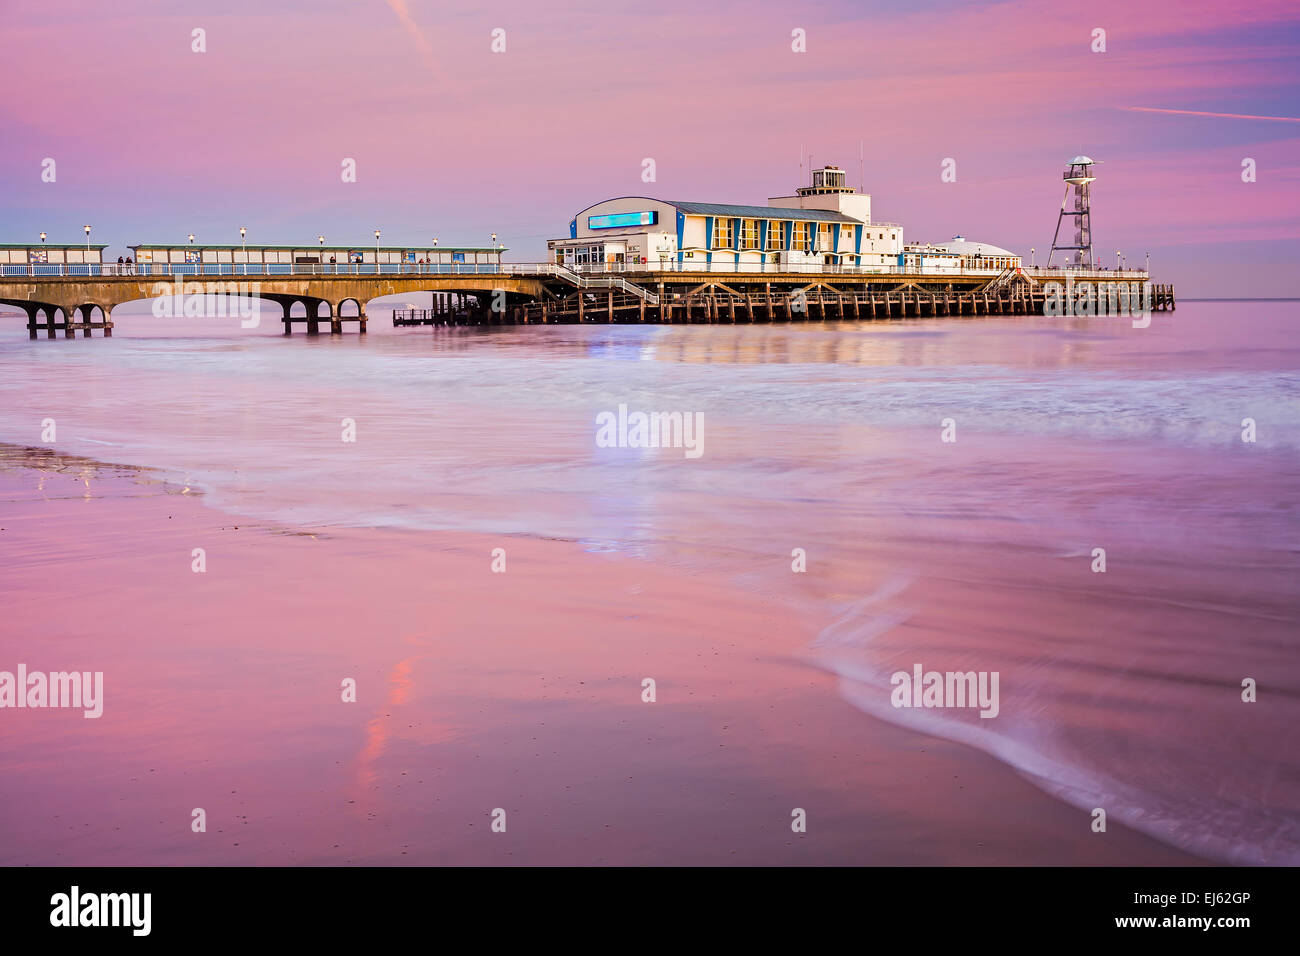 Bournemouth pier at Sunset from beach Dorset England UK Europe Stock Photo